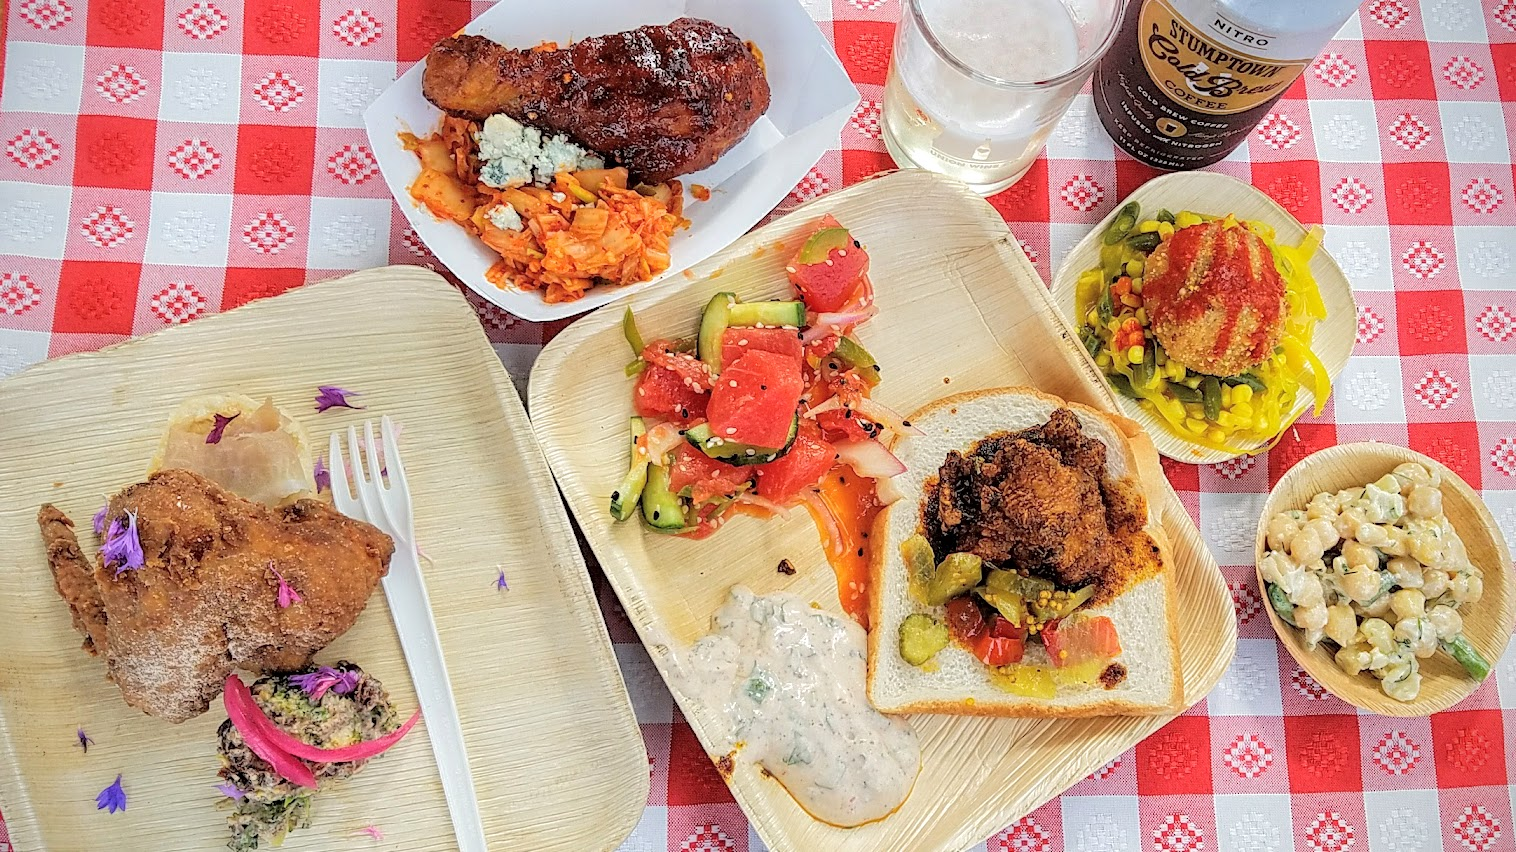 All the savory dishes at Feast PDX Go Get You Some Picnic including Korean Fried Chicken by Tommy Habetz; Hot chicken with vaudovan seasonings (and white bread and pickles) along with Salad Sauce and Tequila watermelon salad with sesame cucumber and jalapeno by Gabriel Rucker; Lard fried chicken wing accompanied by a sorghum butter and country ham biscuit and after-church broccoli salad by Mya Lovelace; and Chicken Fried Pigtails, Hot Sauce, Stinky Chow Chow, and Three Bean Salad by Matthew Jennings